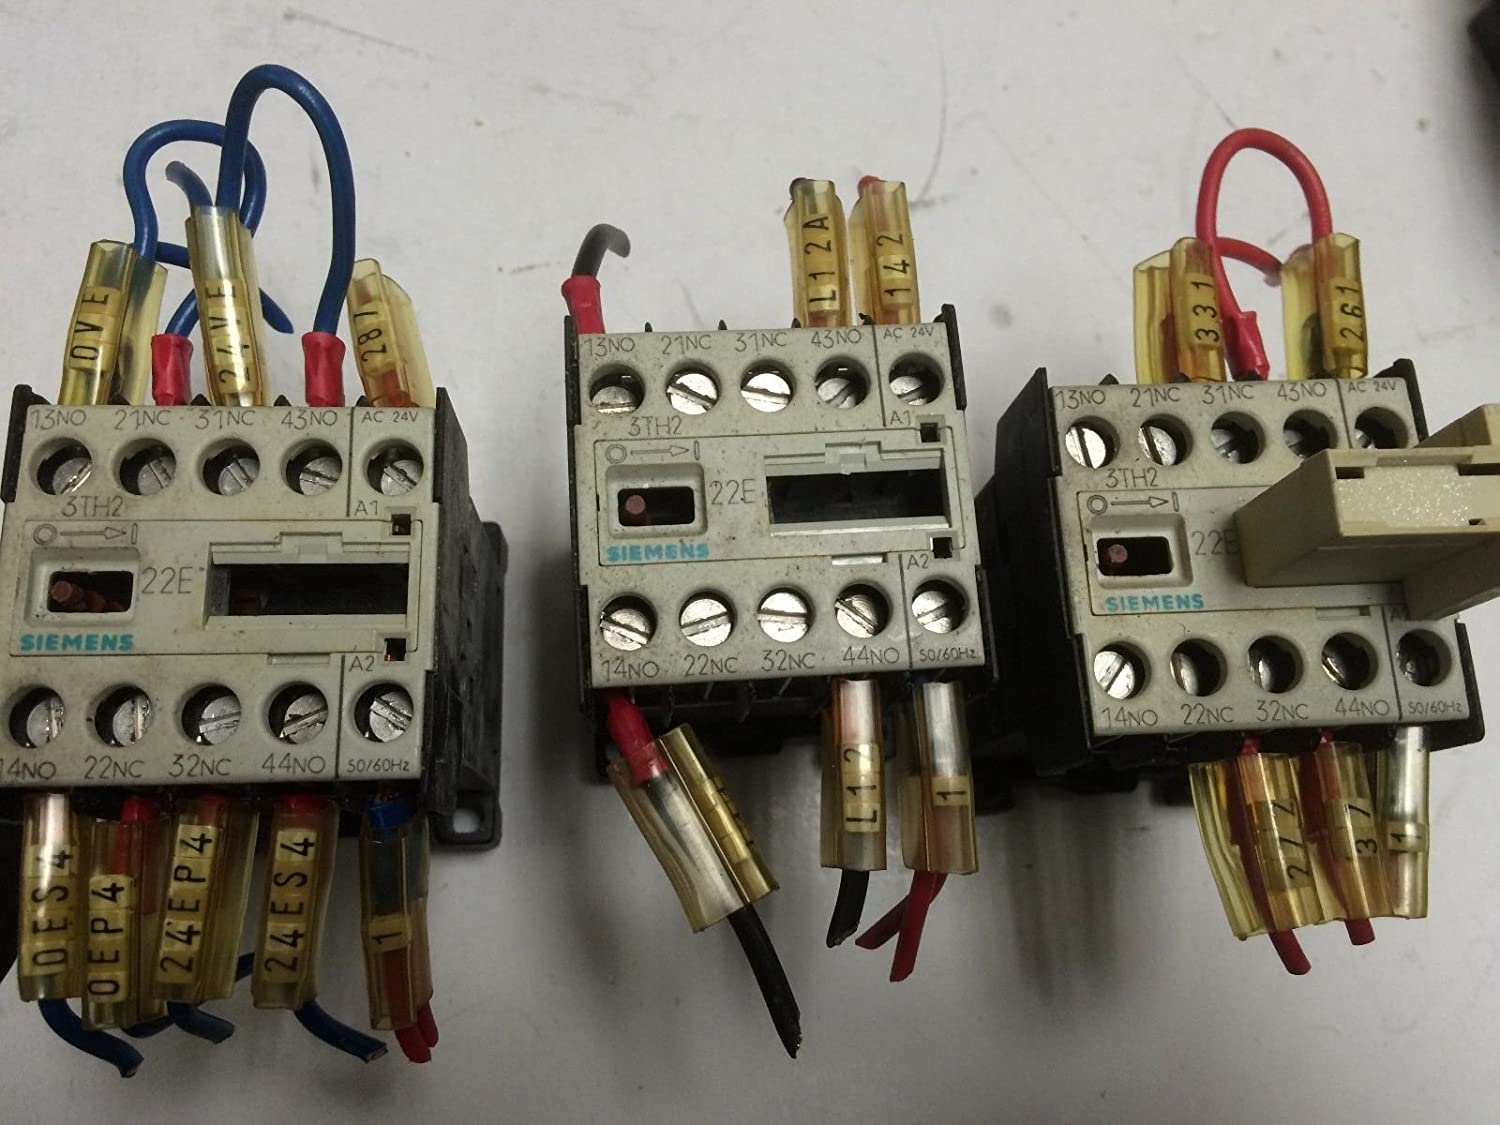 33 3TH2022-OAC2 3TH2,22E USED LOT OF 3 SIEMENS CONTACTOR 3TH2022-0AC2